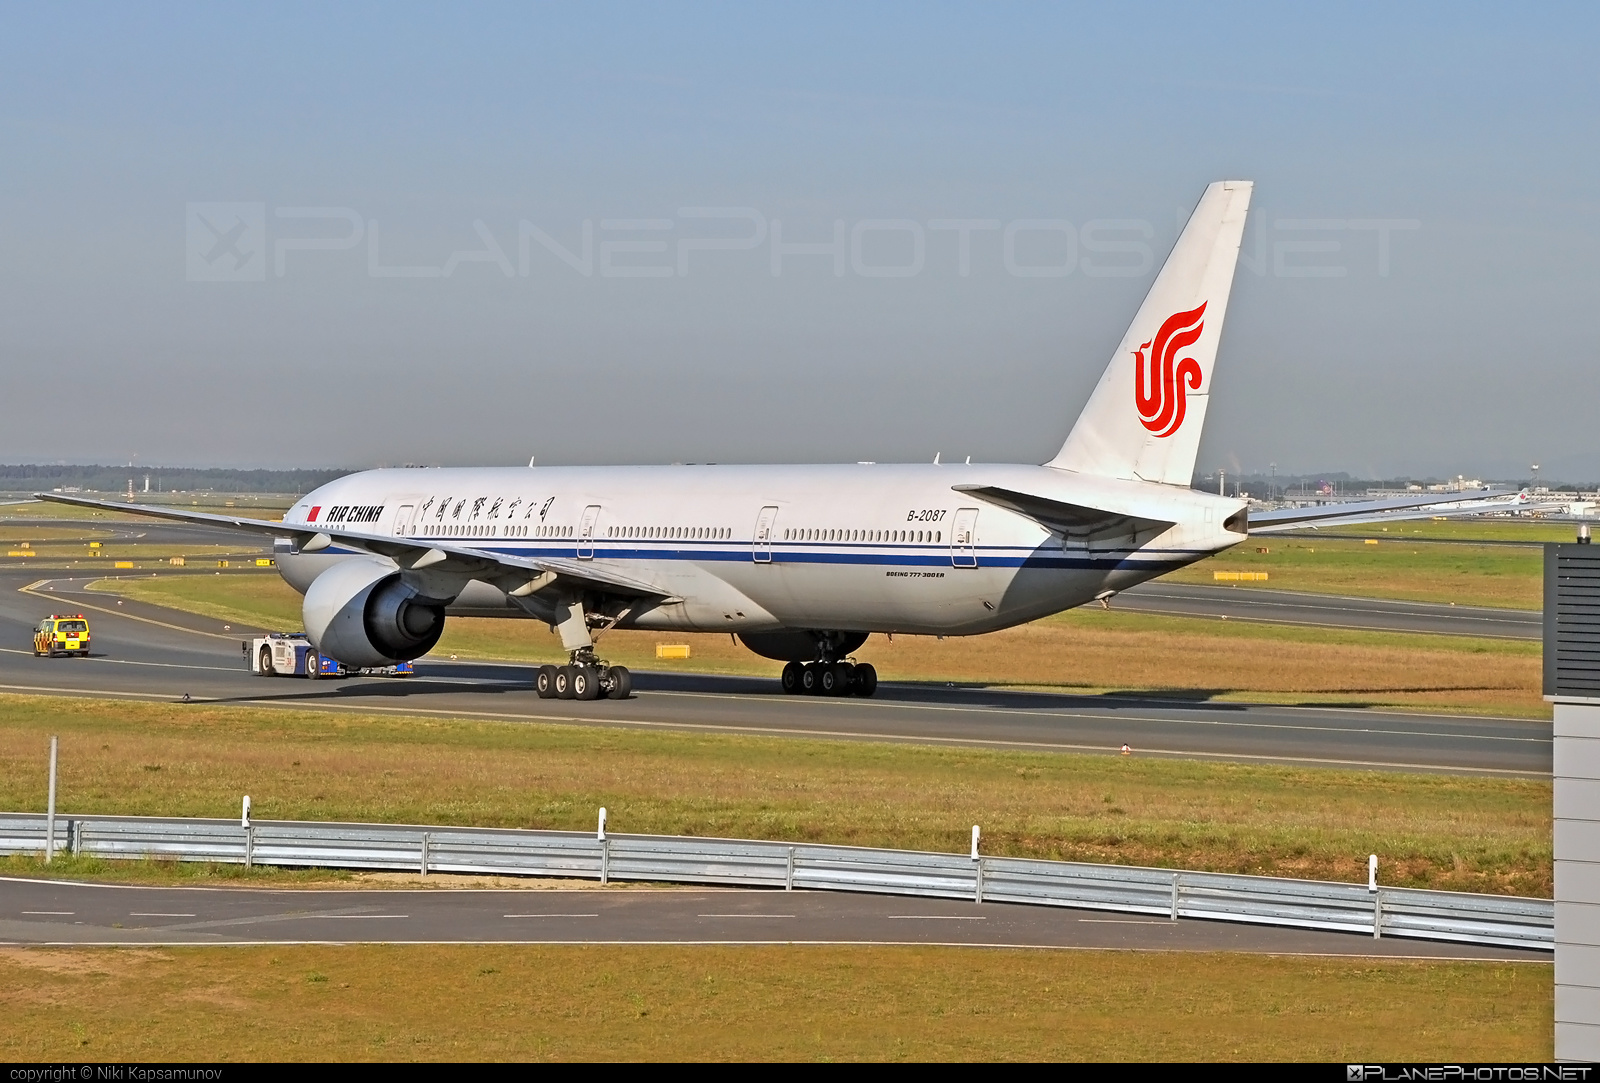 Boeing 777-300ER - B-2087 operated by Air China #airchina #b777 #b777er #boeing #boeing777 #tripleseven